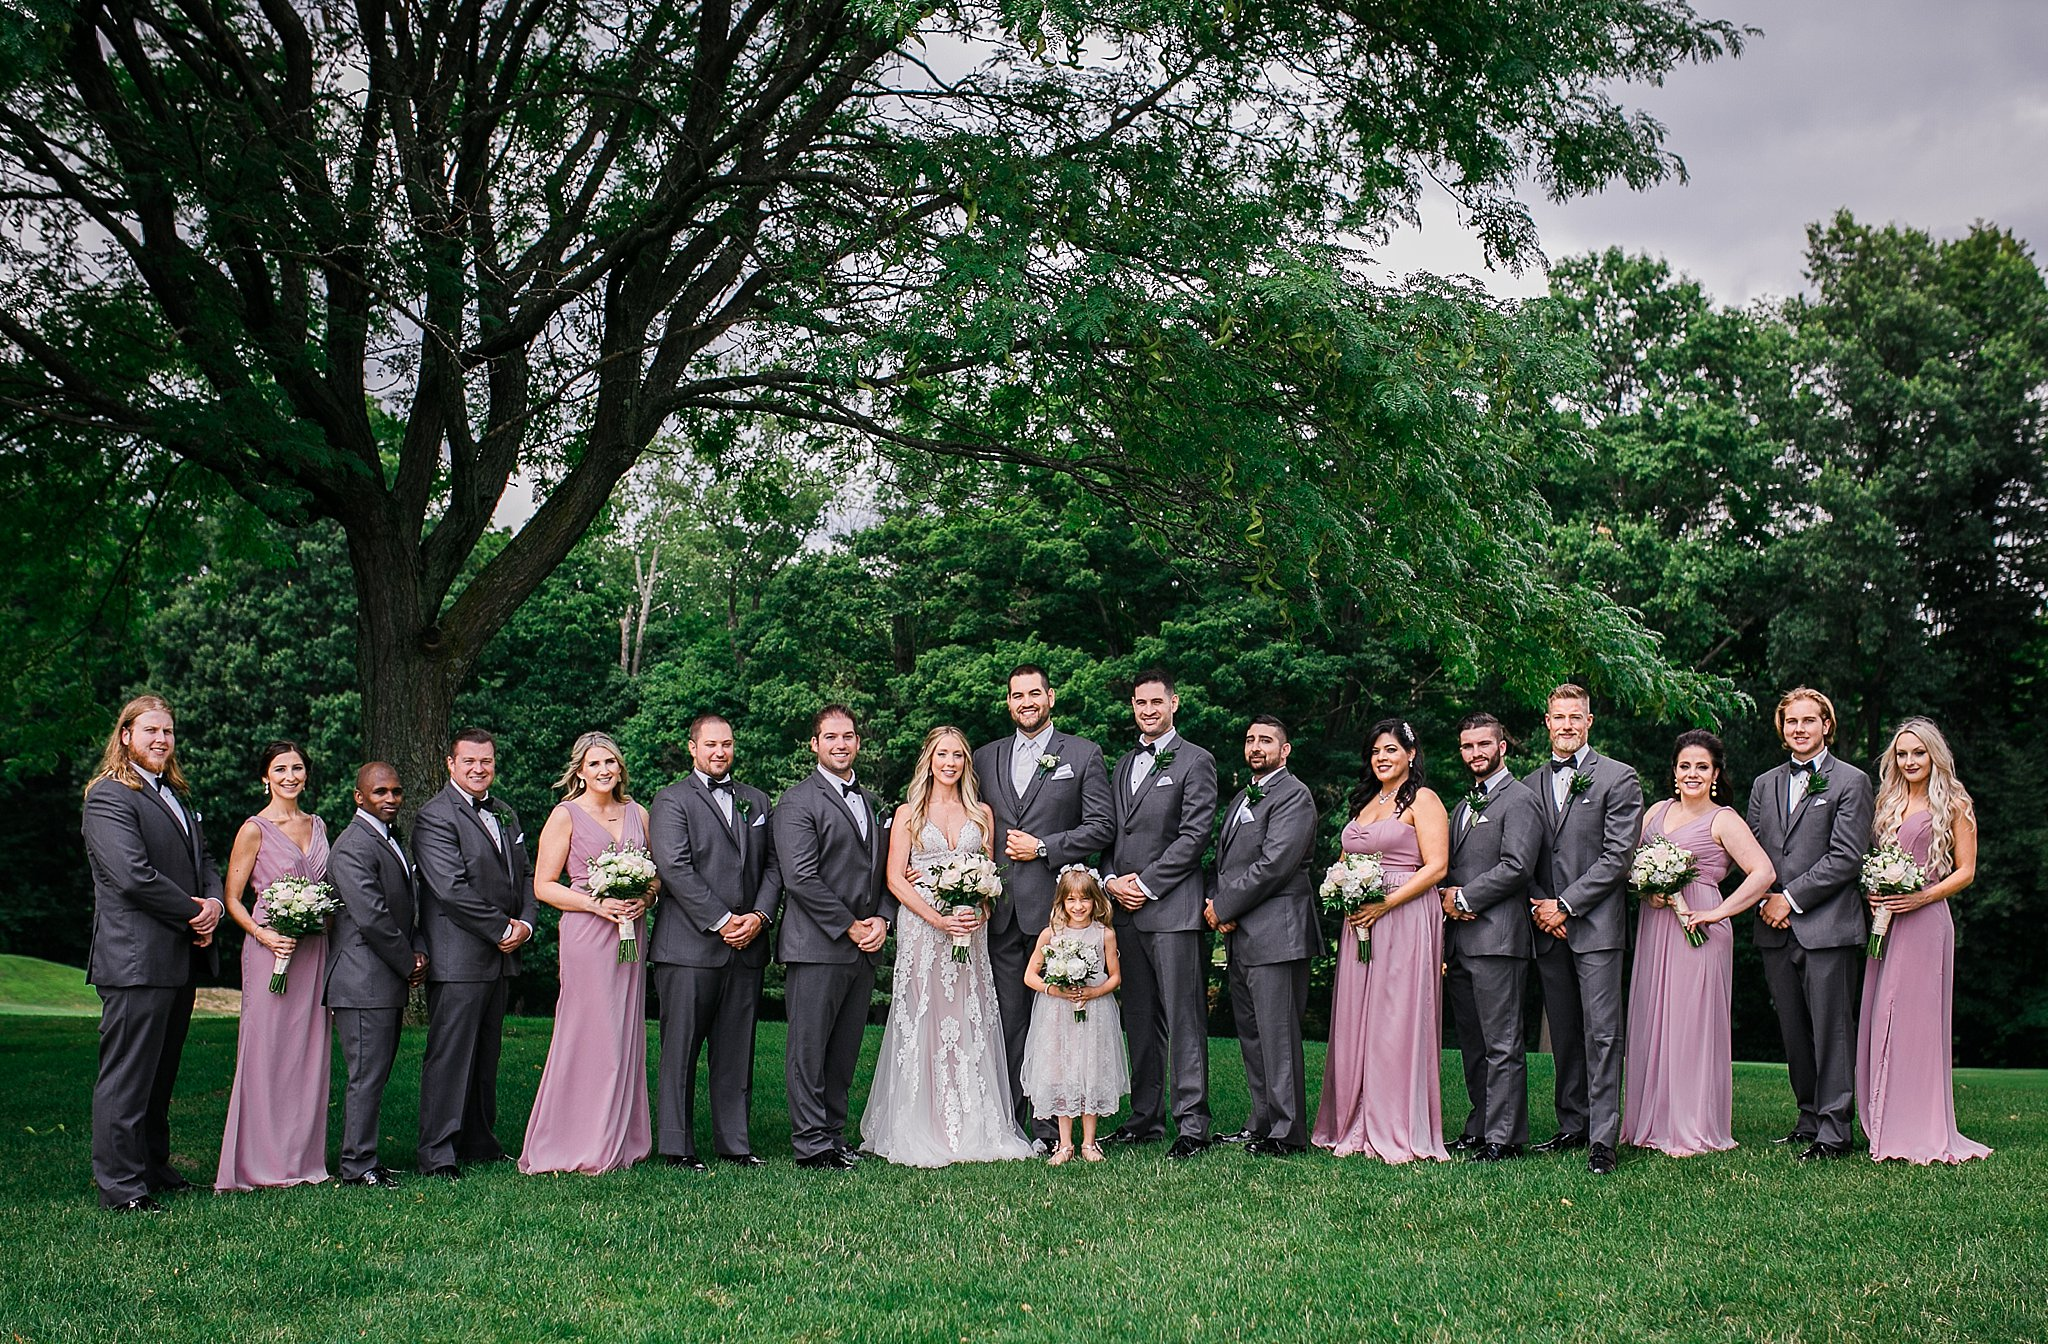 West Hills Country Club Wedding July Wedding Hudson Valley Wedding Hudson Valley Wedding Photographer Sweet Alice Photography55.jpg